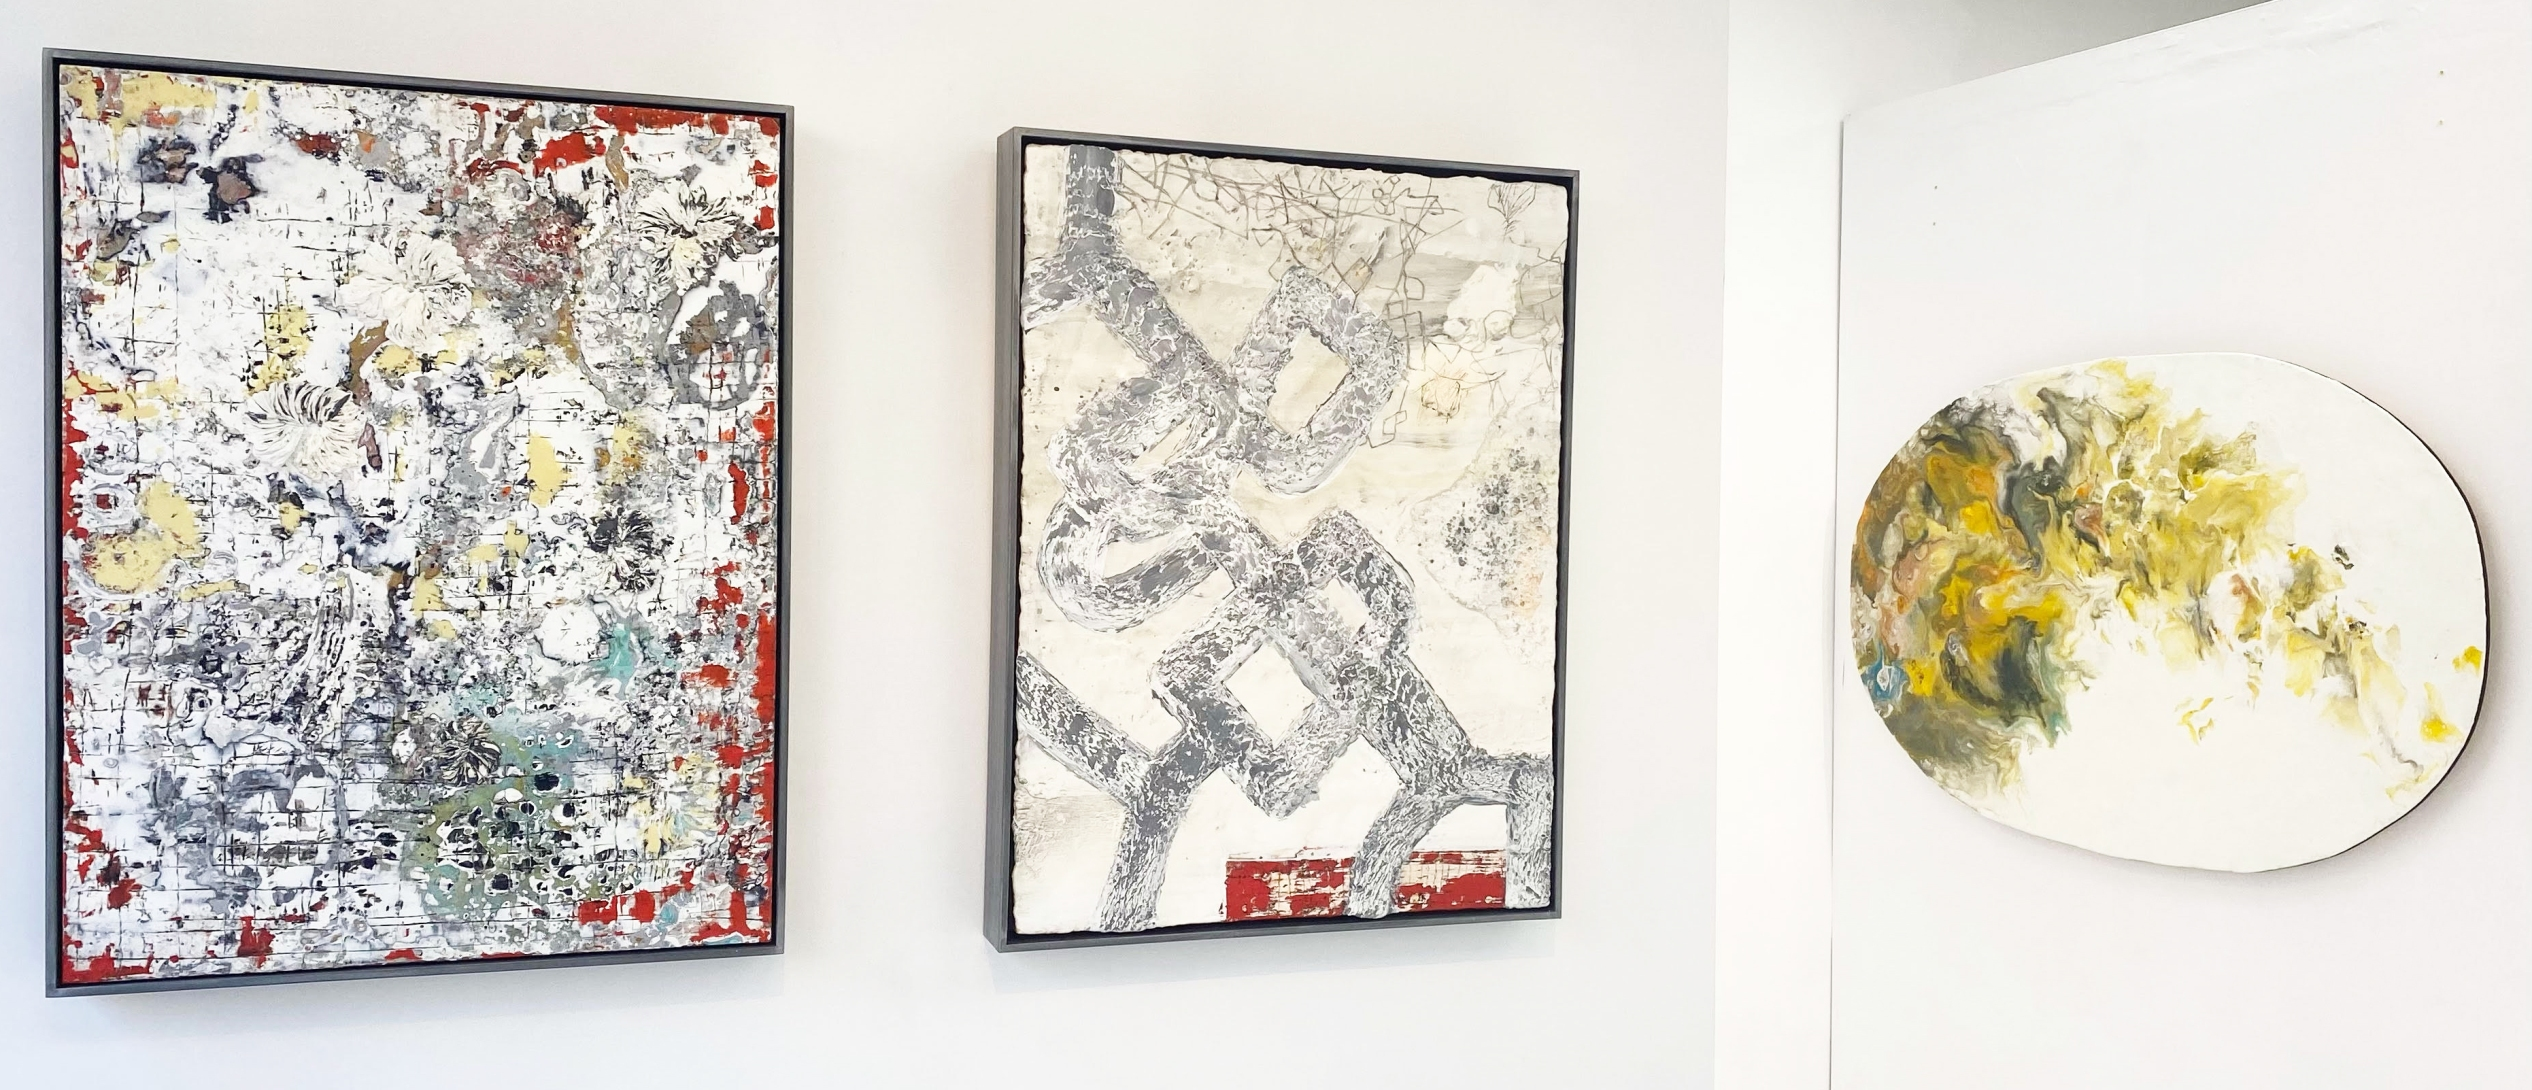 Space 776 Has Presented a New Solo Exhibition of Lynn Basa